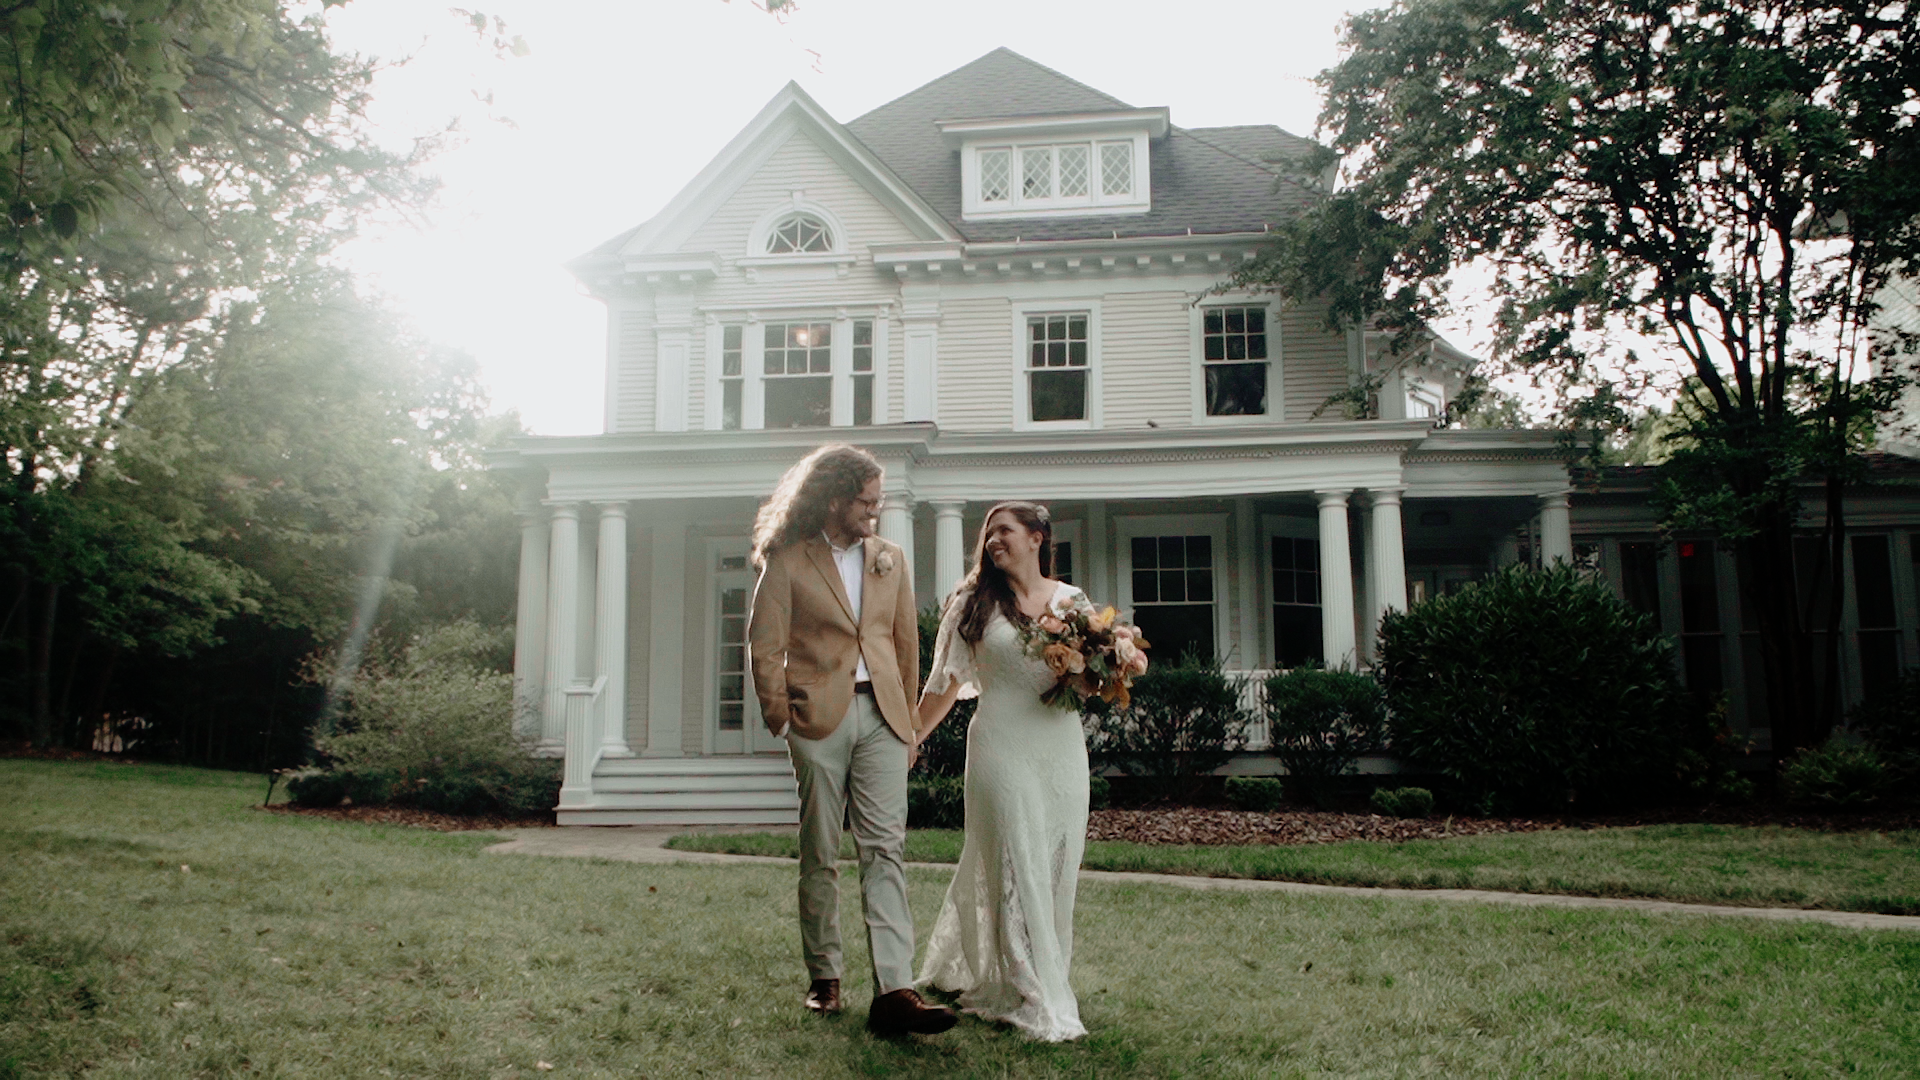 Corrie + Kevin | Greensboro, North Carolina | The McAlister-Leftwich House